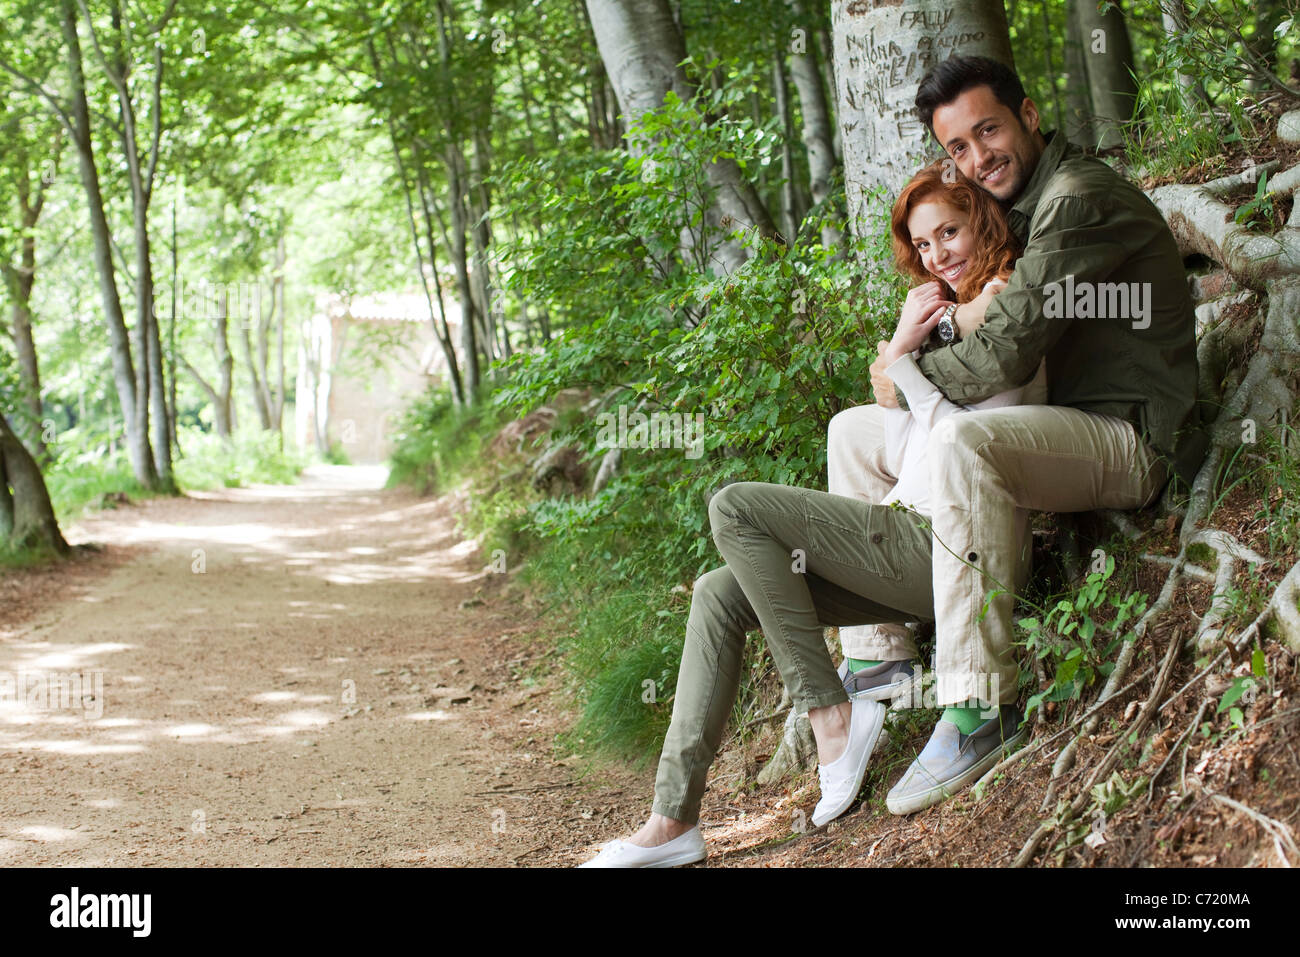 Couple sitting together beside wooded path, portrait - Stock Image